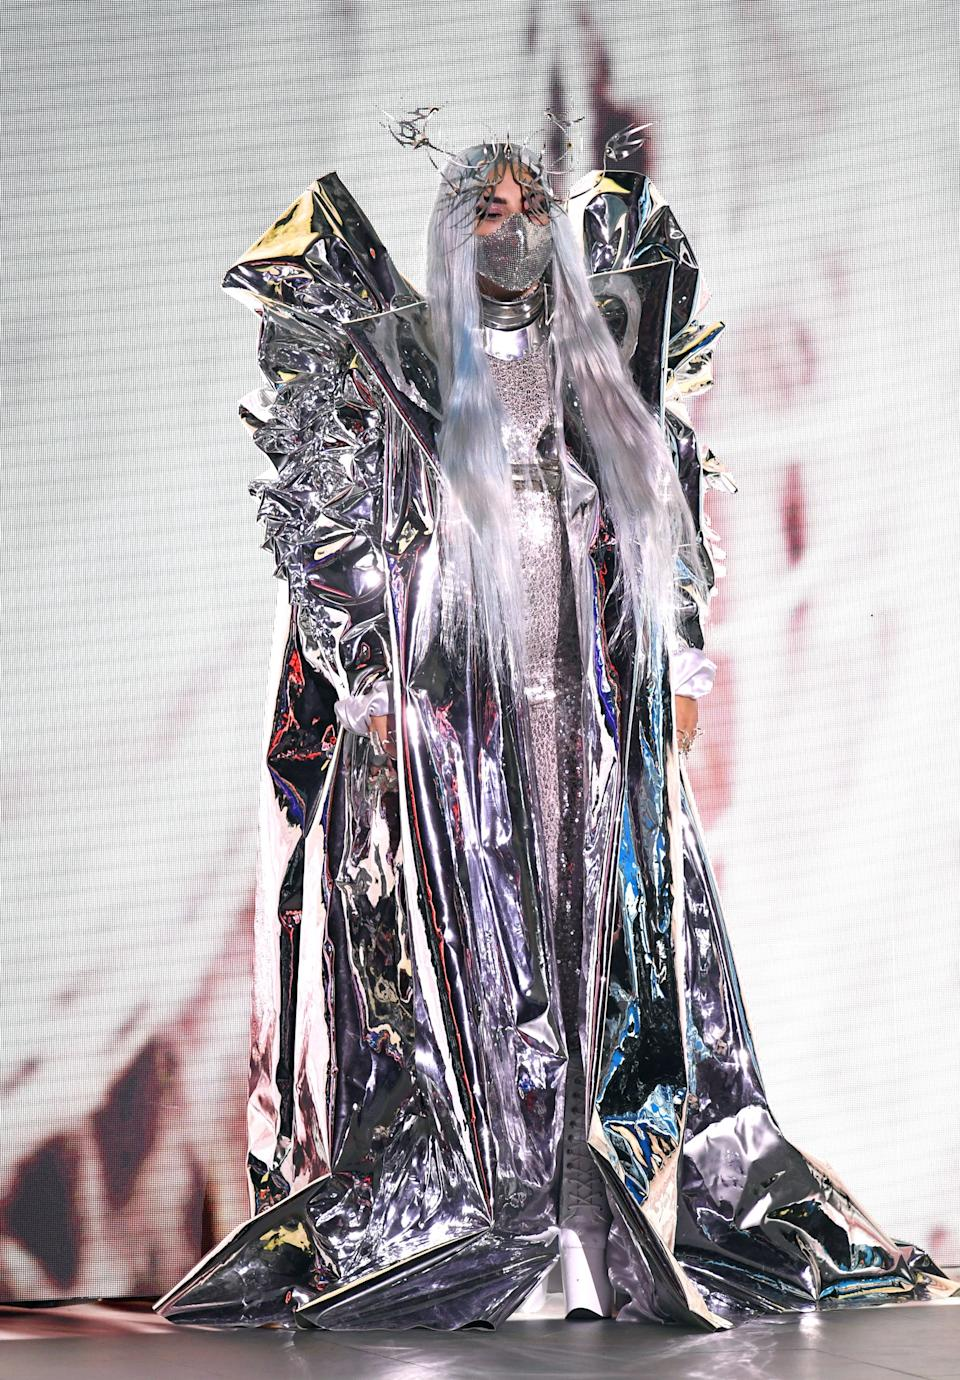 """For once, Gaga didn't do a complete outfit change for this look. Instead, she kept on her Valentino catsuit, and just swapped out her feathered cape for a Candace Cuoco ice-like jacket and an avant-garde headpiece that could also double as a social distancing tool.<br><br><em>Lady Gaga is wearing a Candace Cuoco jacket, a Valentino catsuit, a Manuel Albarran choker and bra, Lance Victor Moore face armor, and Pleaser shoes.</em><br><br><br><br><span class=""""copyright"""">Photo: Kevin Winter/Getty Images.</span>"""